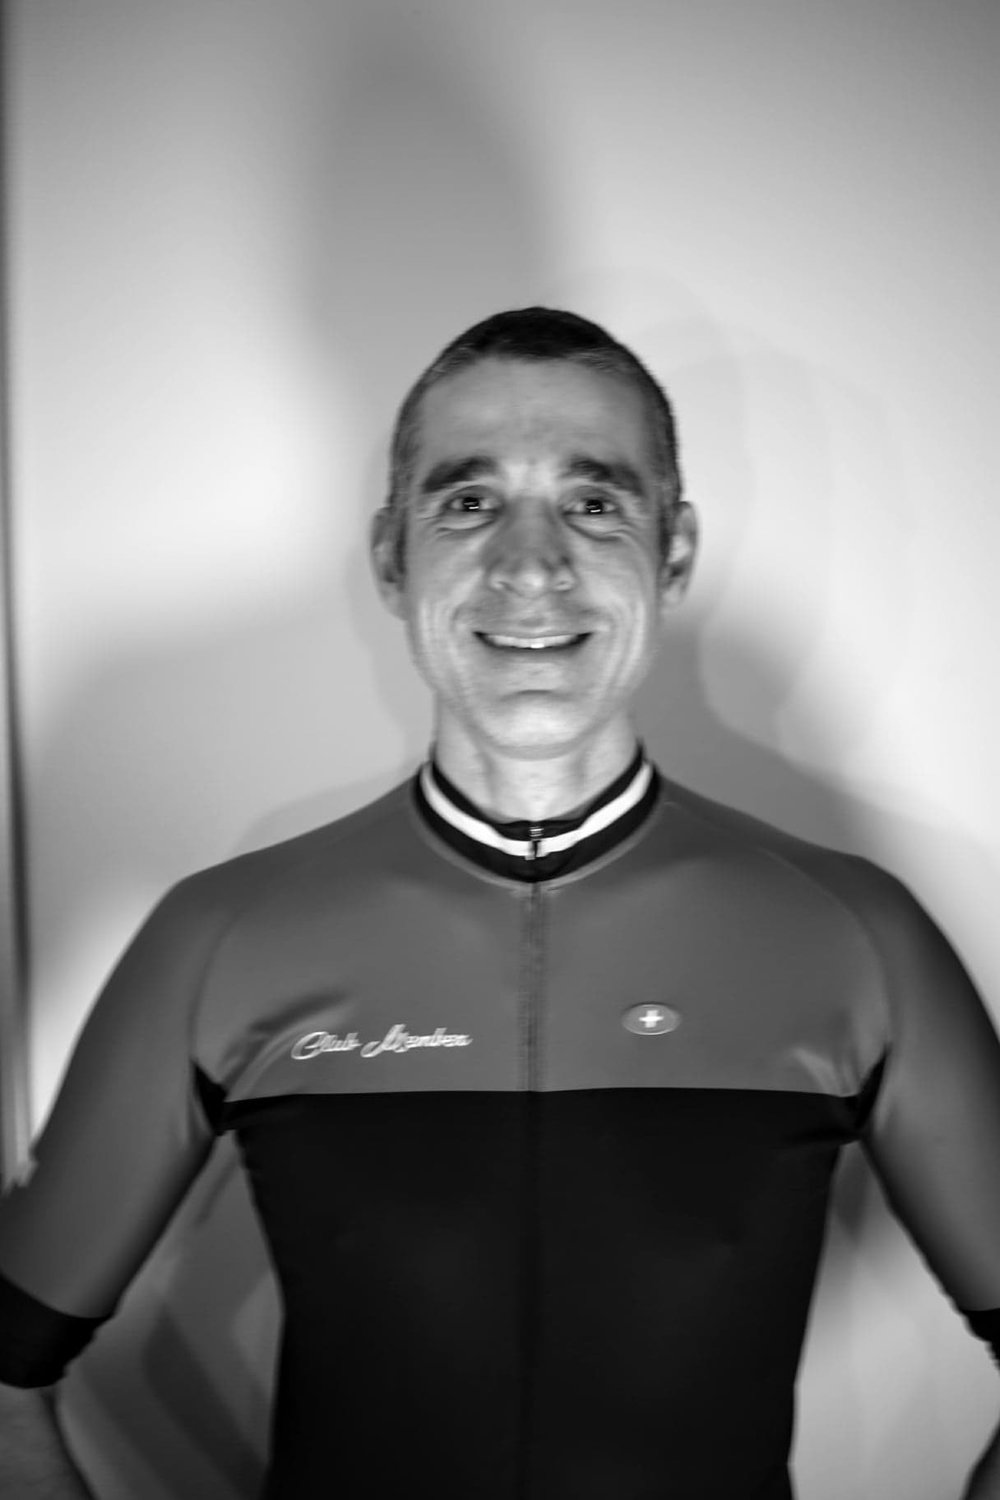 Raoul Wymann - Ride Leader: 4 years